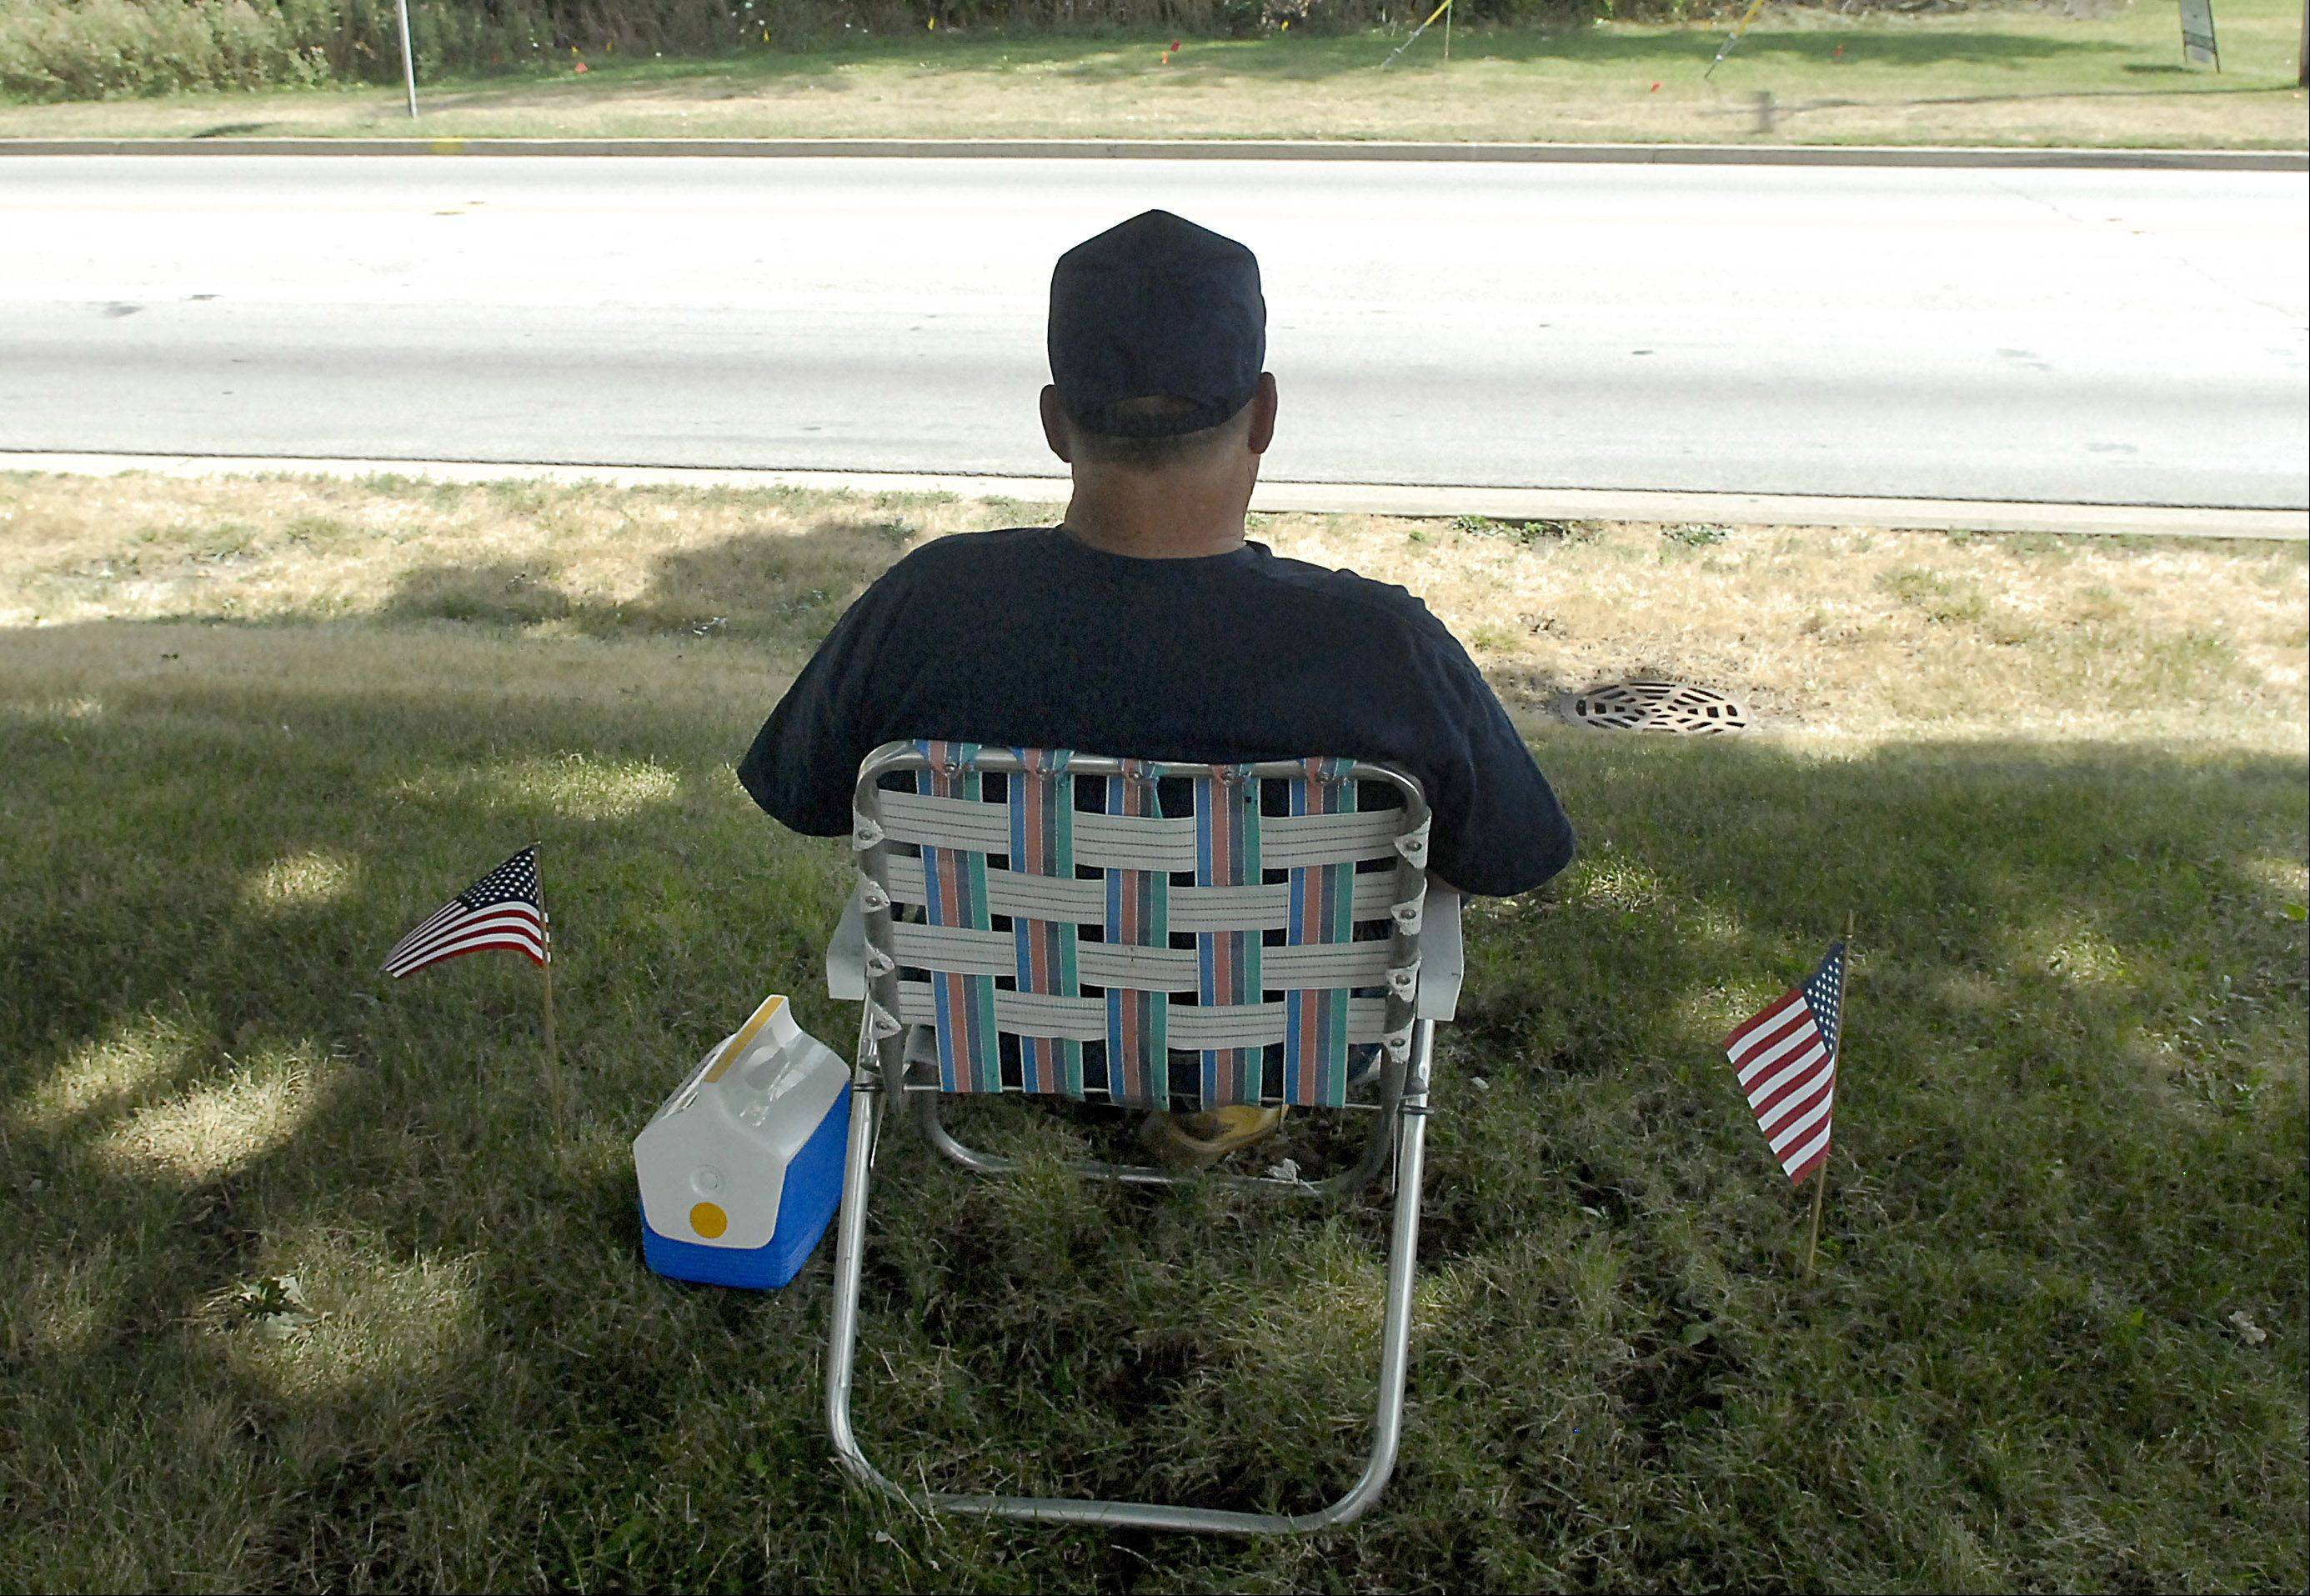 "Bill Keith of Crystal Lake waits for the motorcade escorting the hearse of U.S. Navy Petty Officer John Larimer to drive down East Terra Cotta Avenue in July. Keith, a US Navy Vietnam veteran who served on the USS Cree, ATF-84 (Auxilary Tug Fleet), knew Larimer as a boy scout in Troop 168. Keith, an Assistant Scout Master at that time, remembered Larimer as, ""Just a good kid, full of life."""